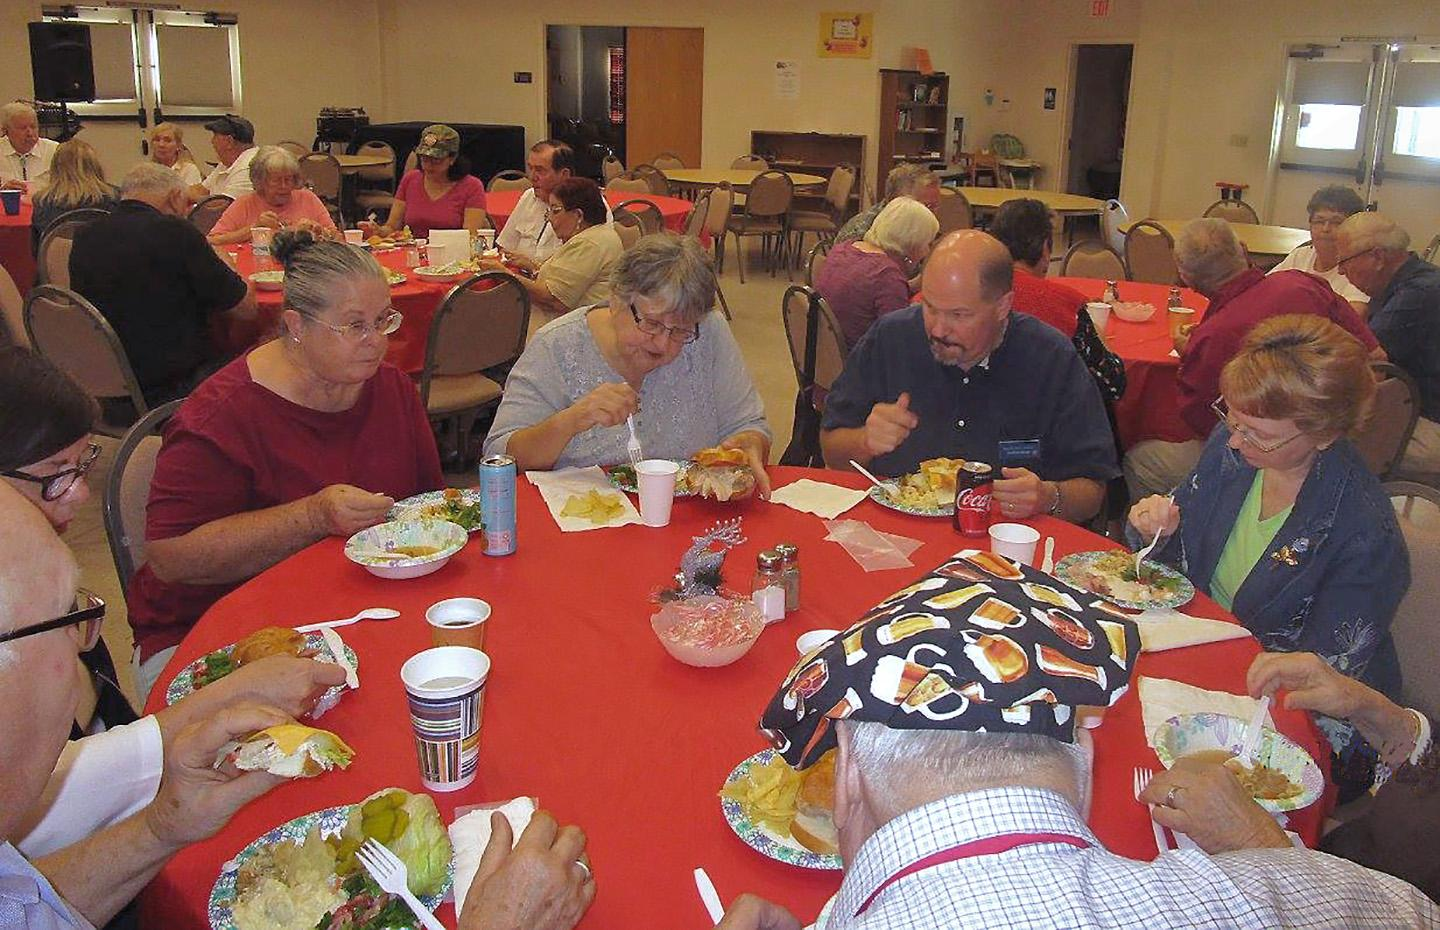 PrimeTimers gather around tables for laughs and food.